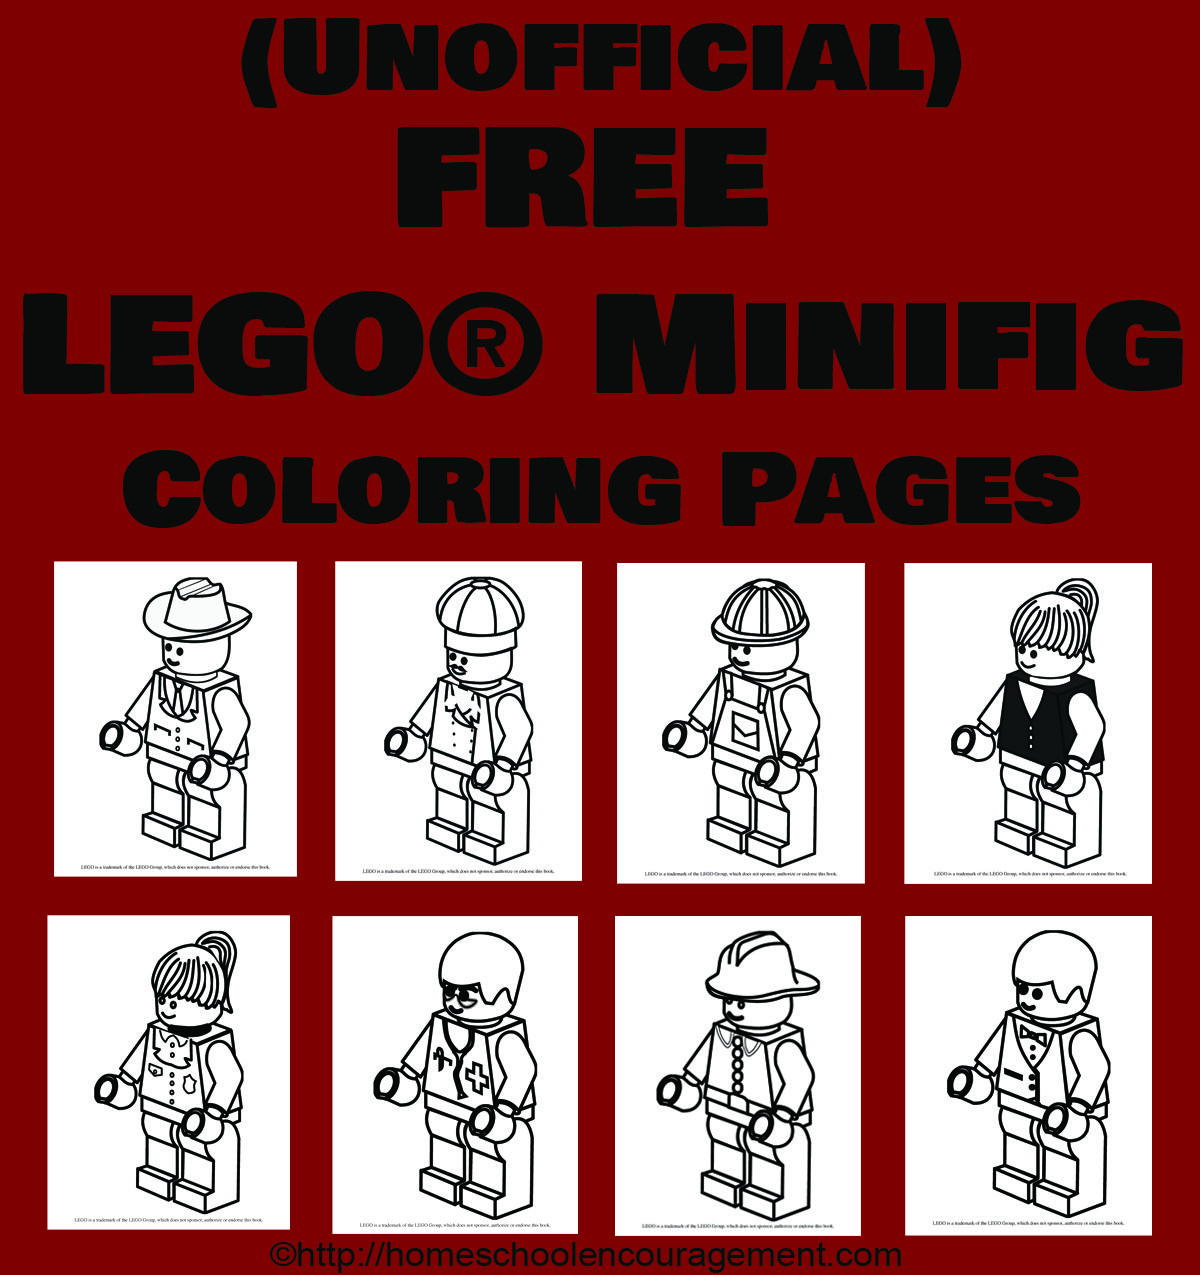 8 Free #LEGO Minifig Coloring Pages from #Homeschool Encouragement ...